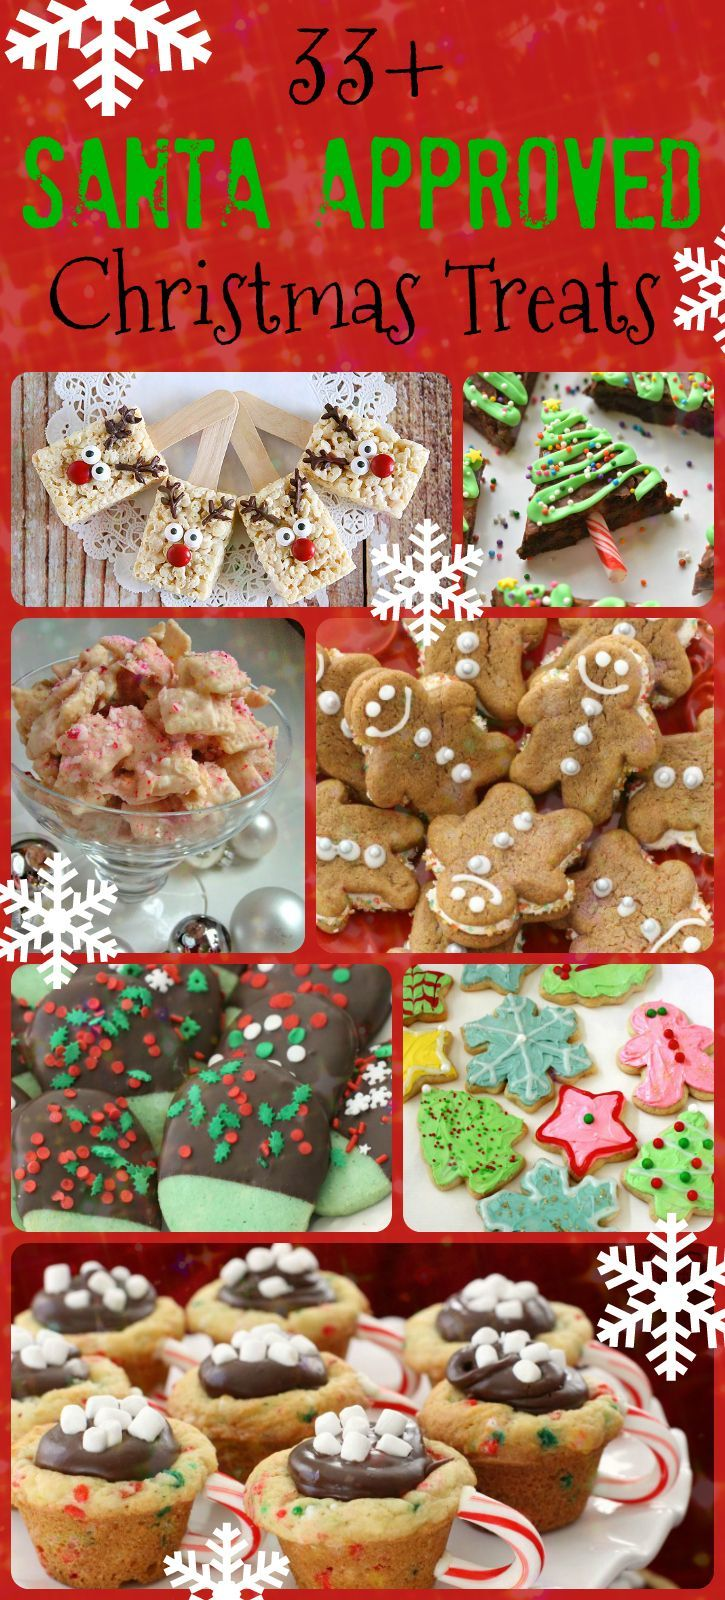 33 santa approved christmas treats a fun roundup of simple easy holiday recipes